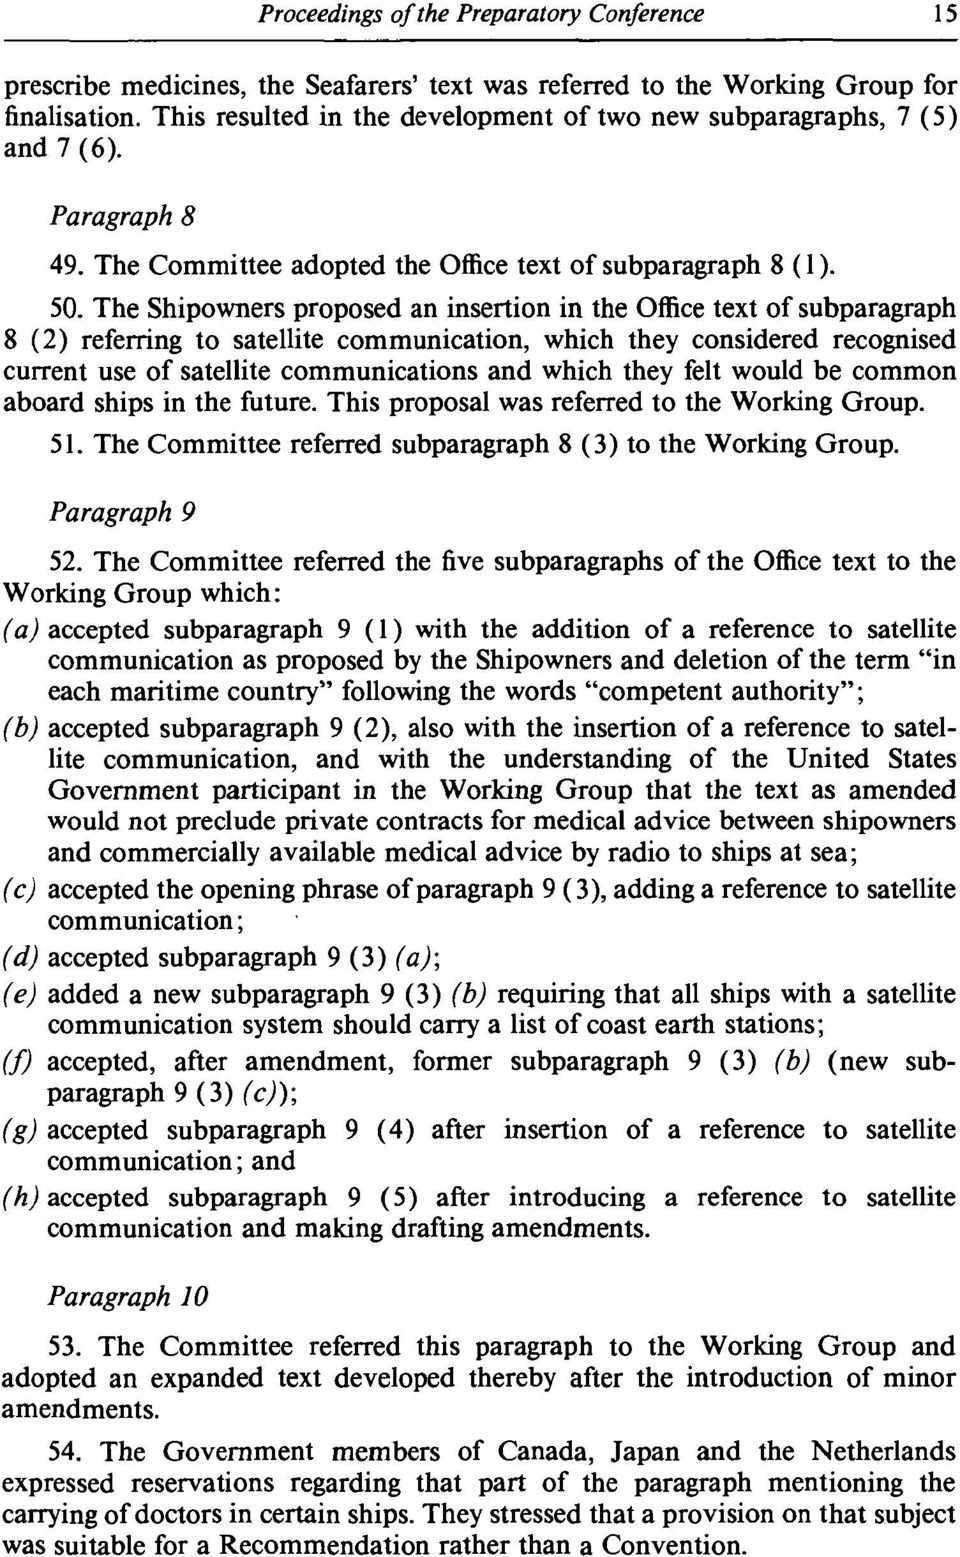 The Shipowners proposed an insertion in the Office text of subparagraph 8 (2) referring to satellite communication, which they considered recognised current use of satellite communications and which